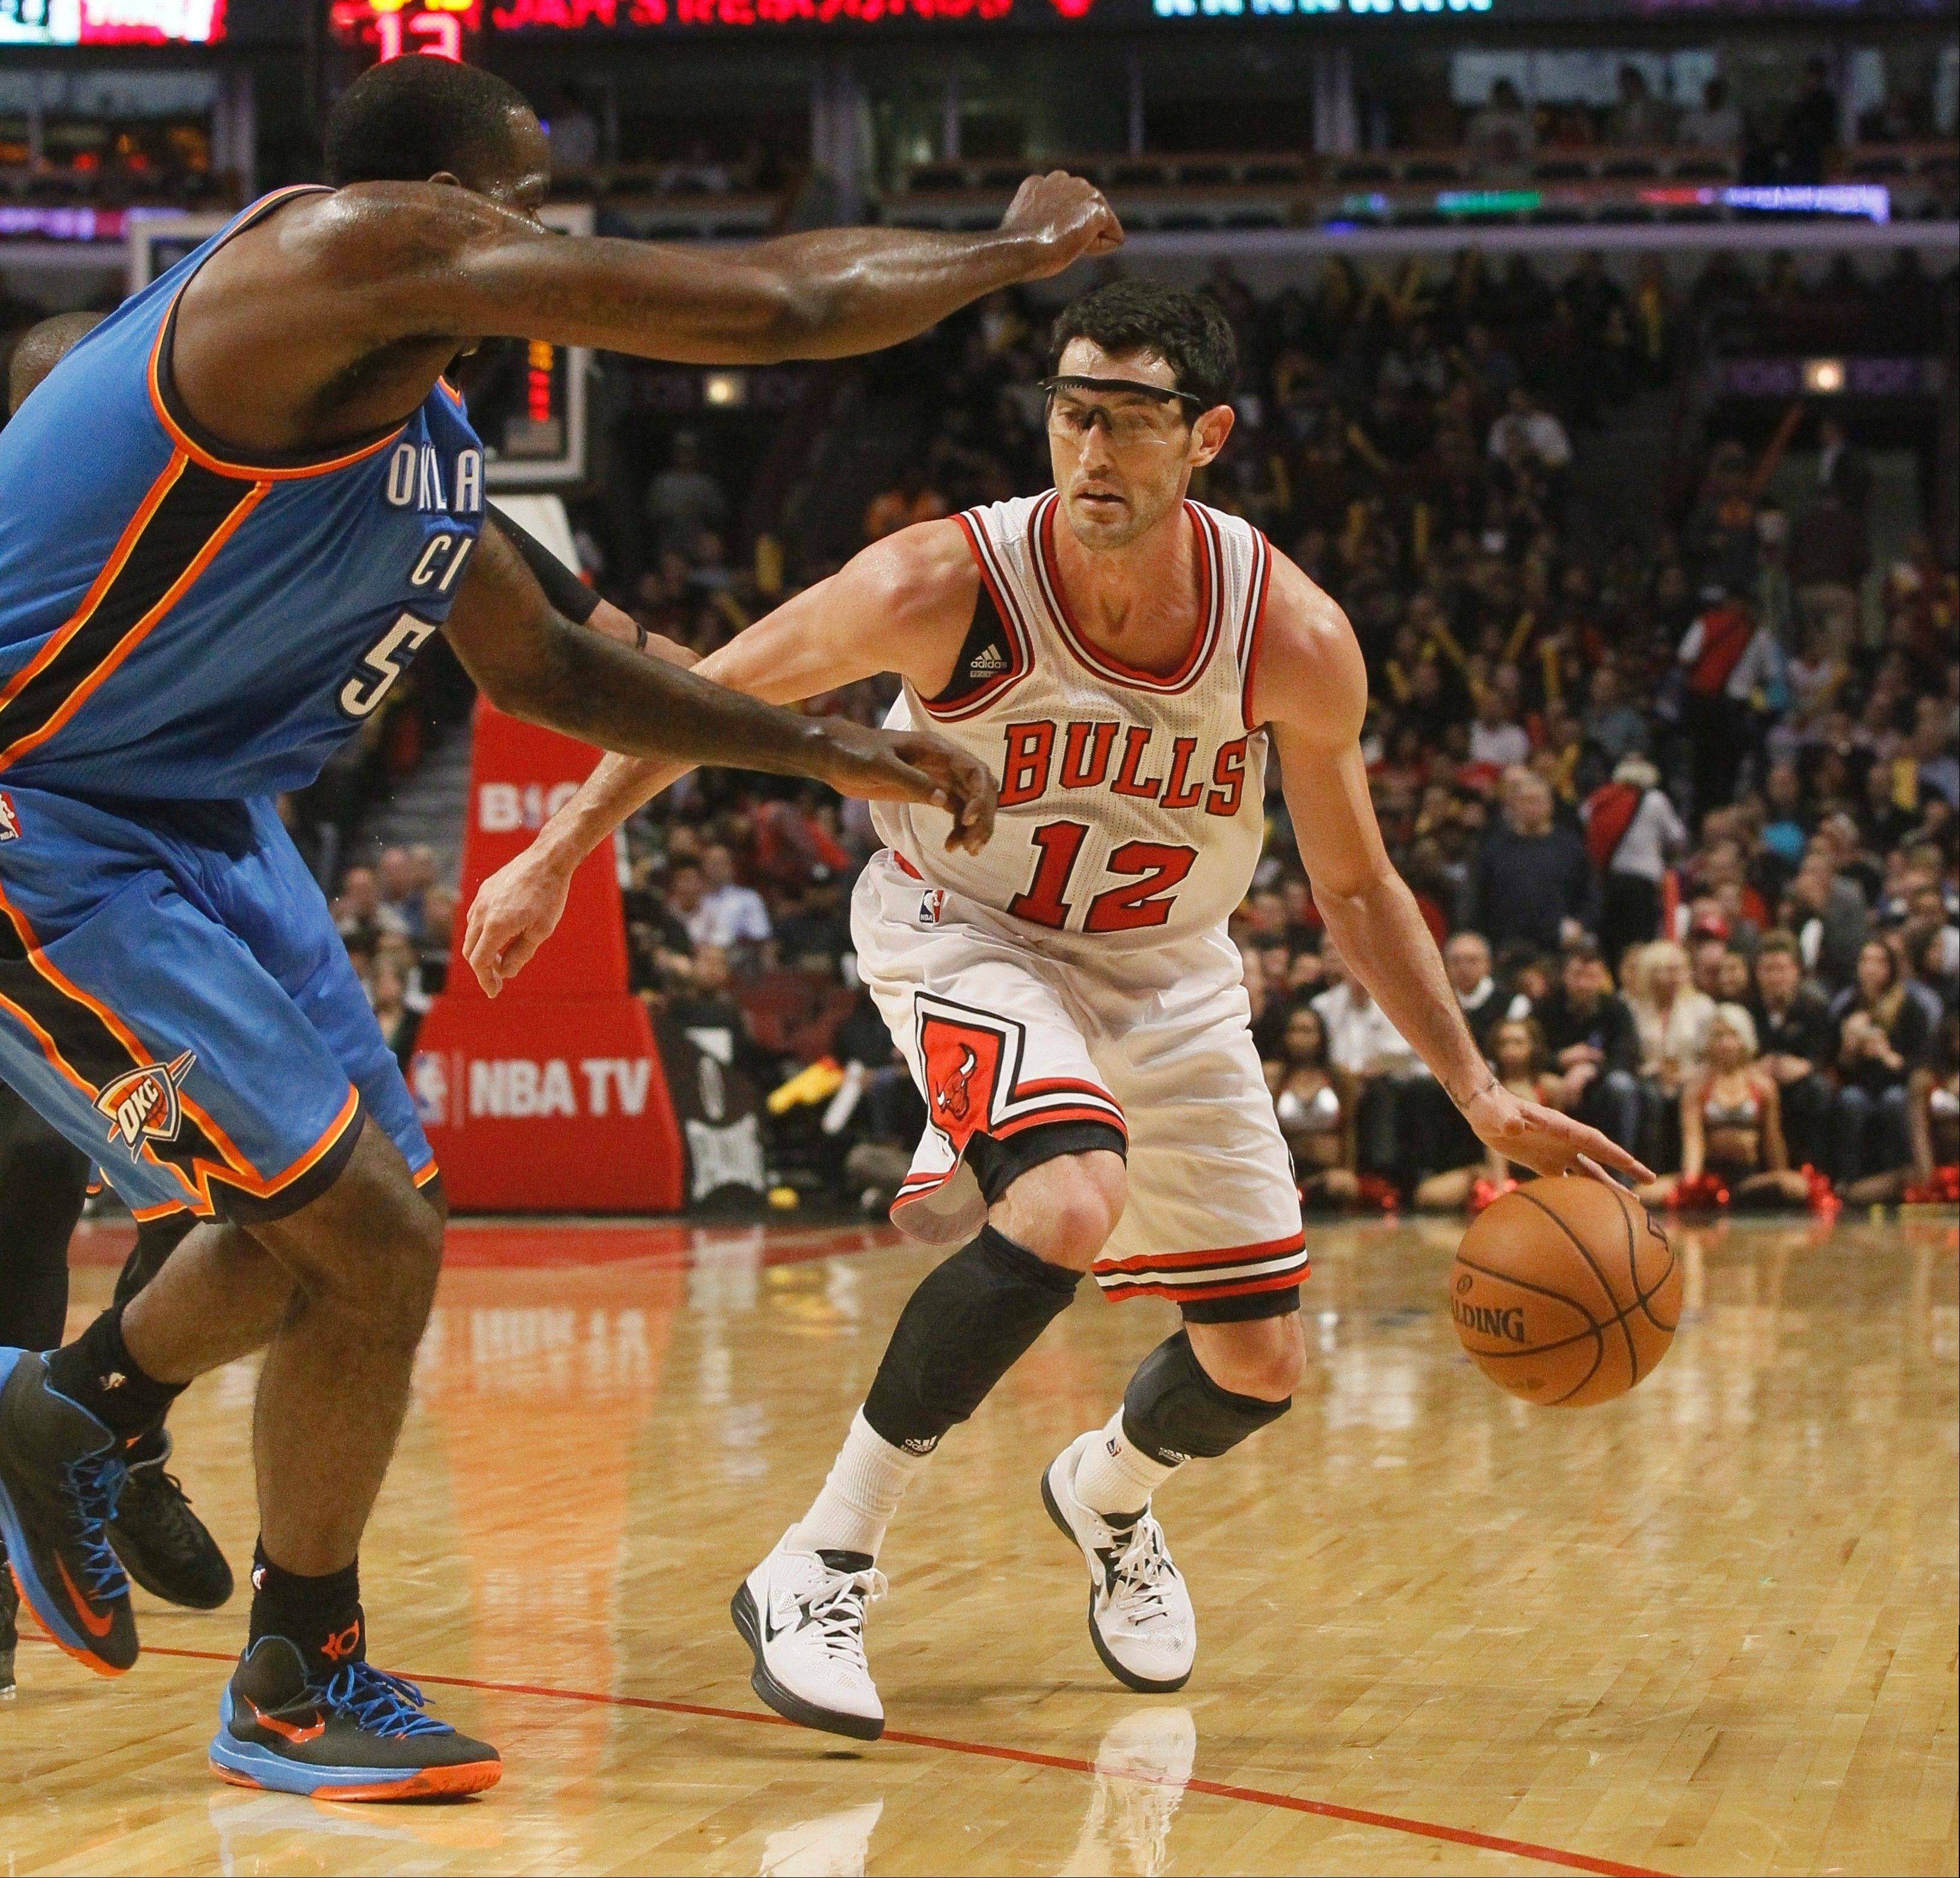 Bulls guard Kirk Hinrich has had some success from the 3-point range, but the Bulls have struggled all season to connect from long distance.